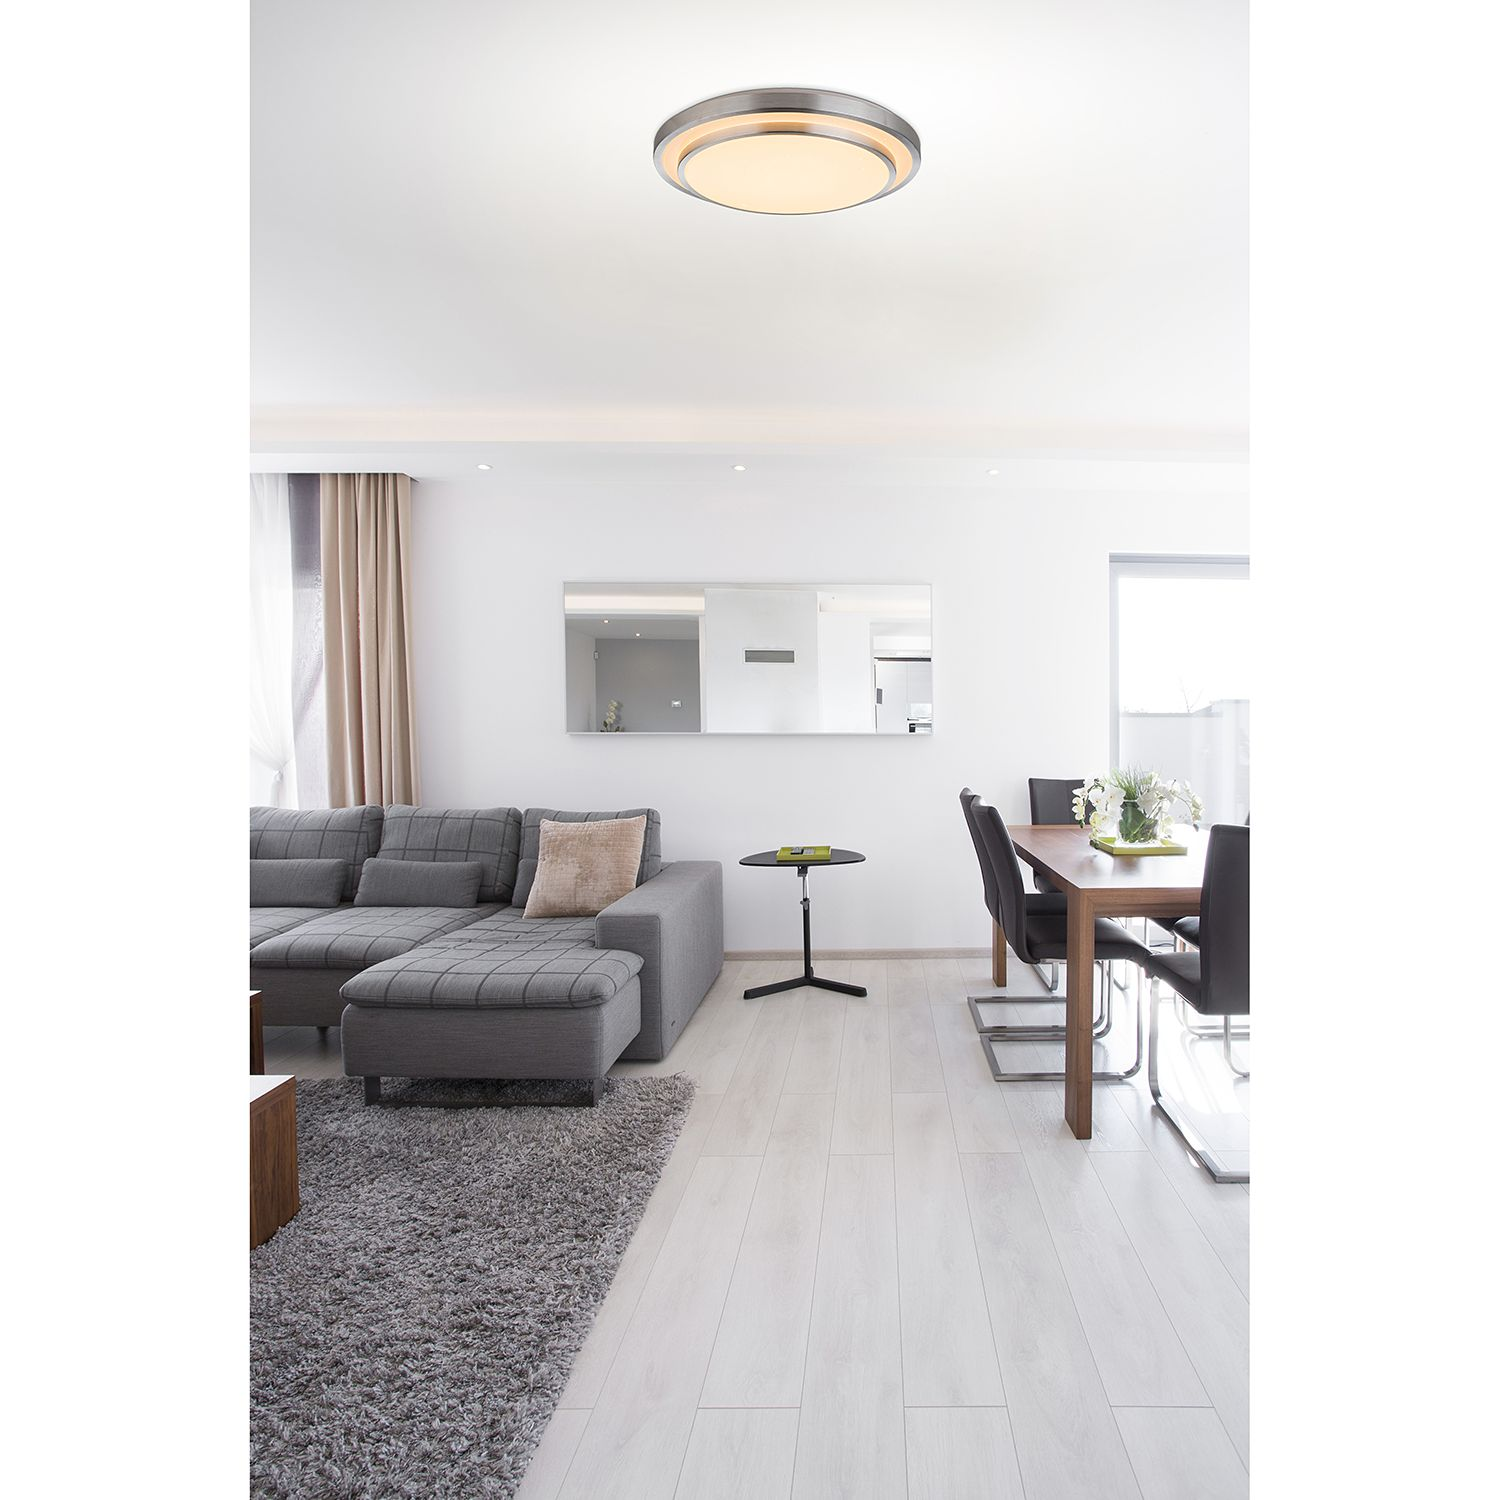 home24 LED-Deckenleuchte Ina